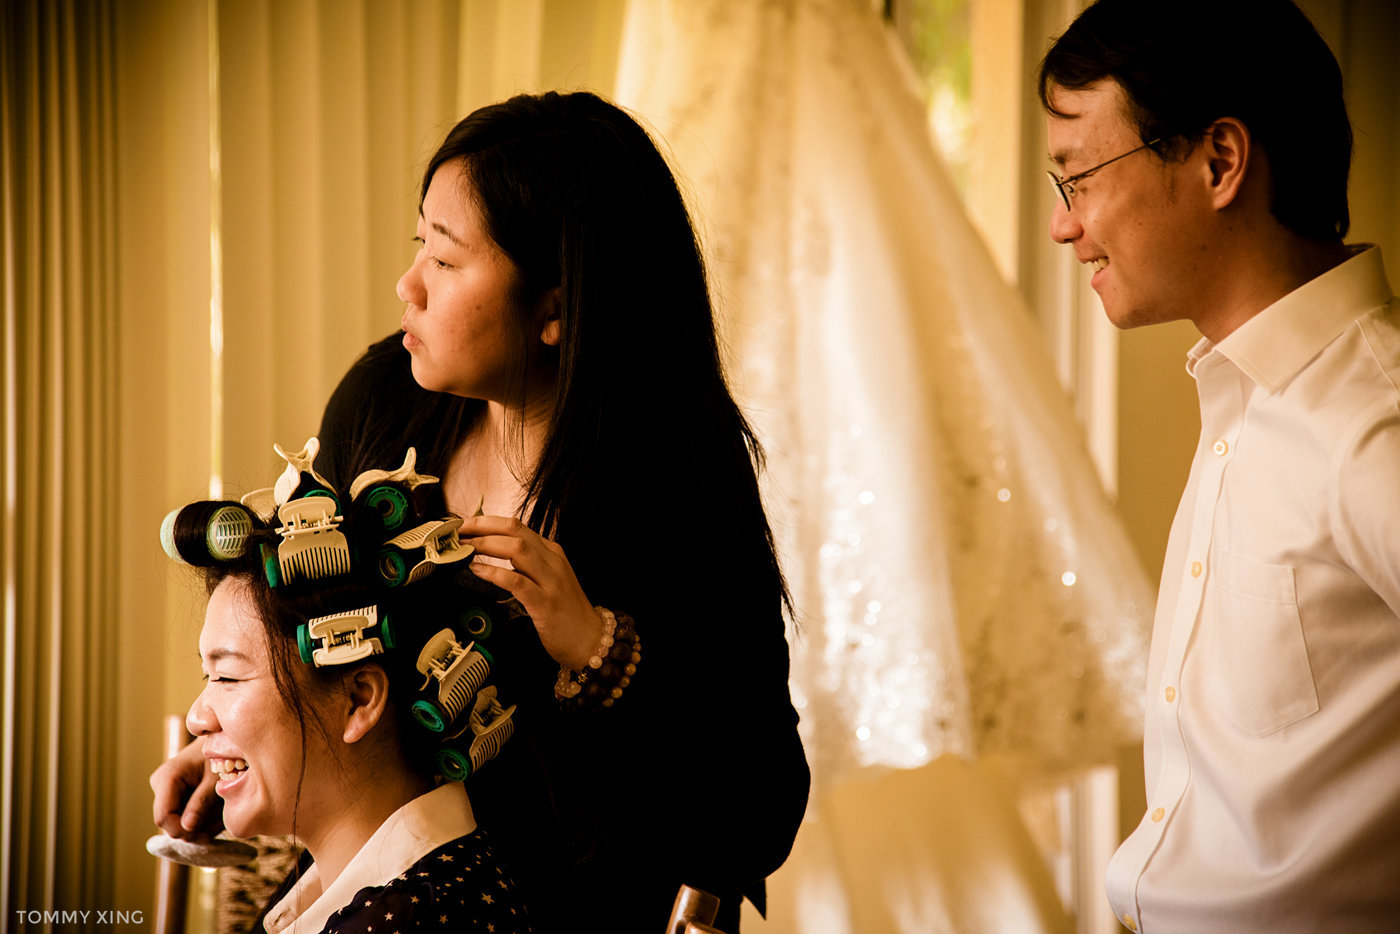 Qinglu Meng & Daozheng Chen Wedding Slideshow-12-E.JPG